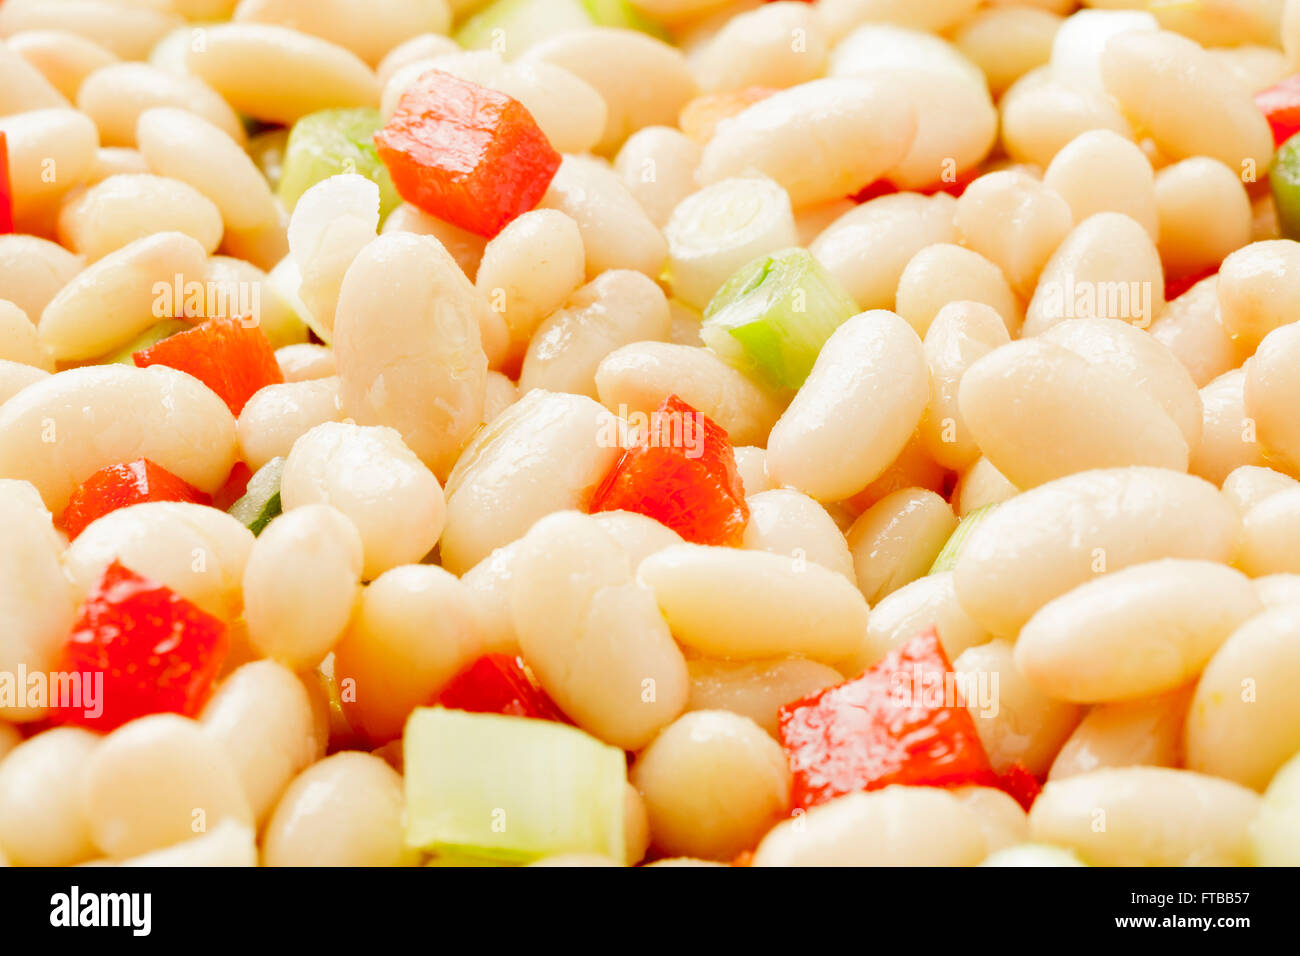 White bean salad with spring onions and red peppers - Stock Image